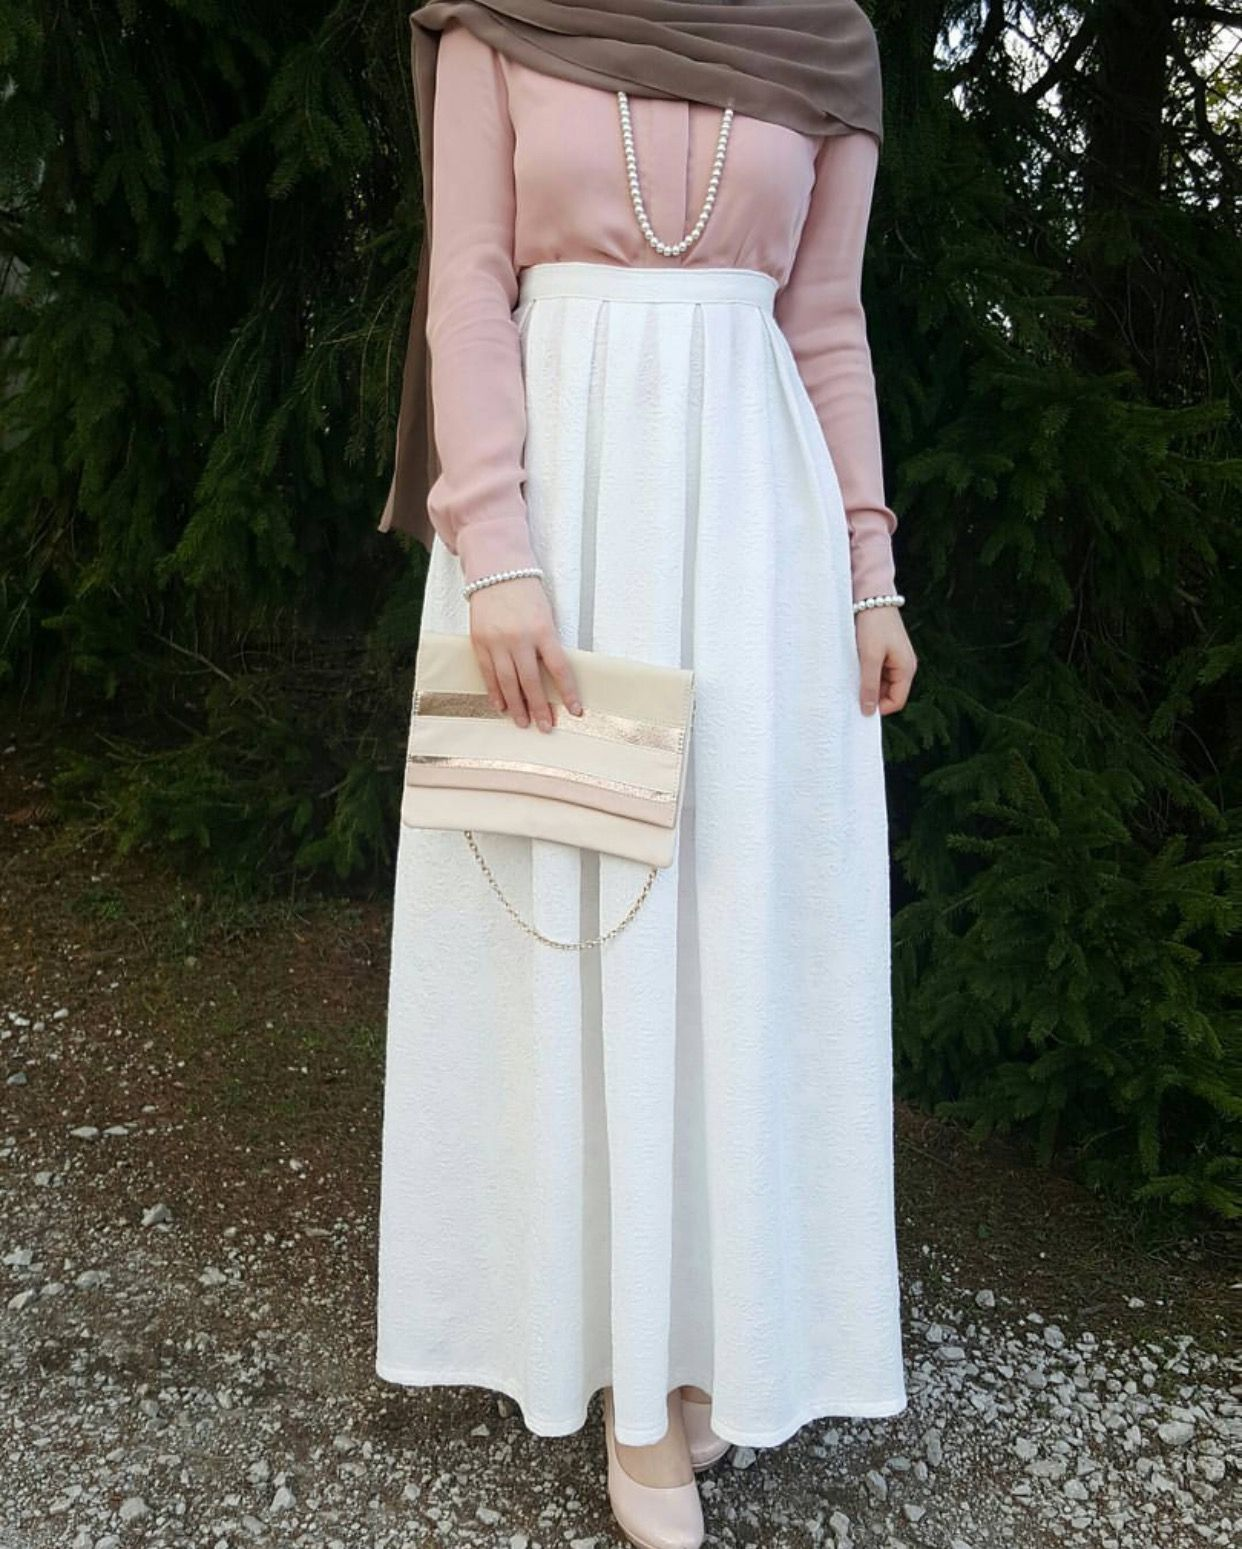 White skirt and blush blouse maybe other accessory check out